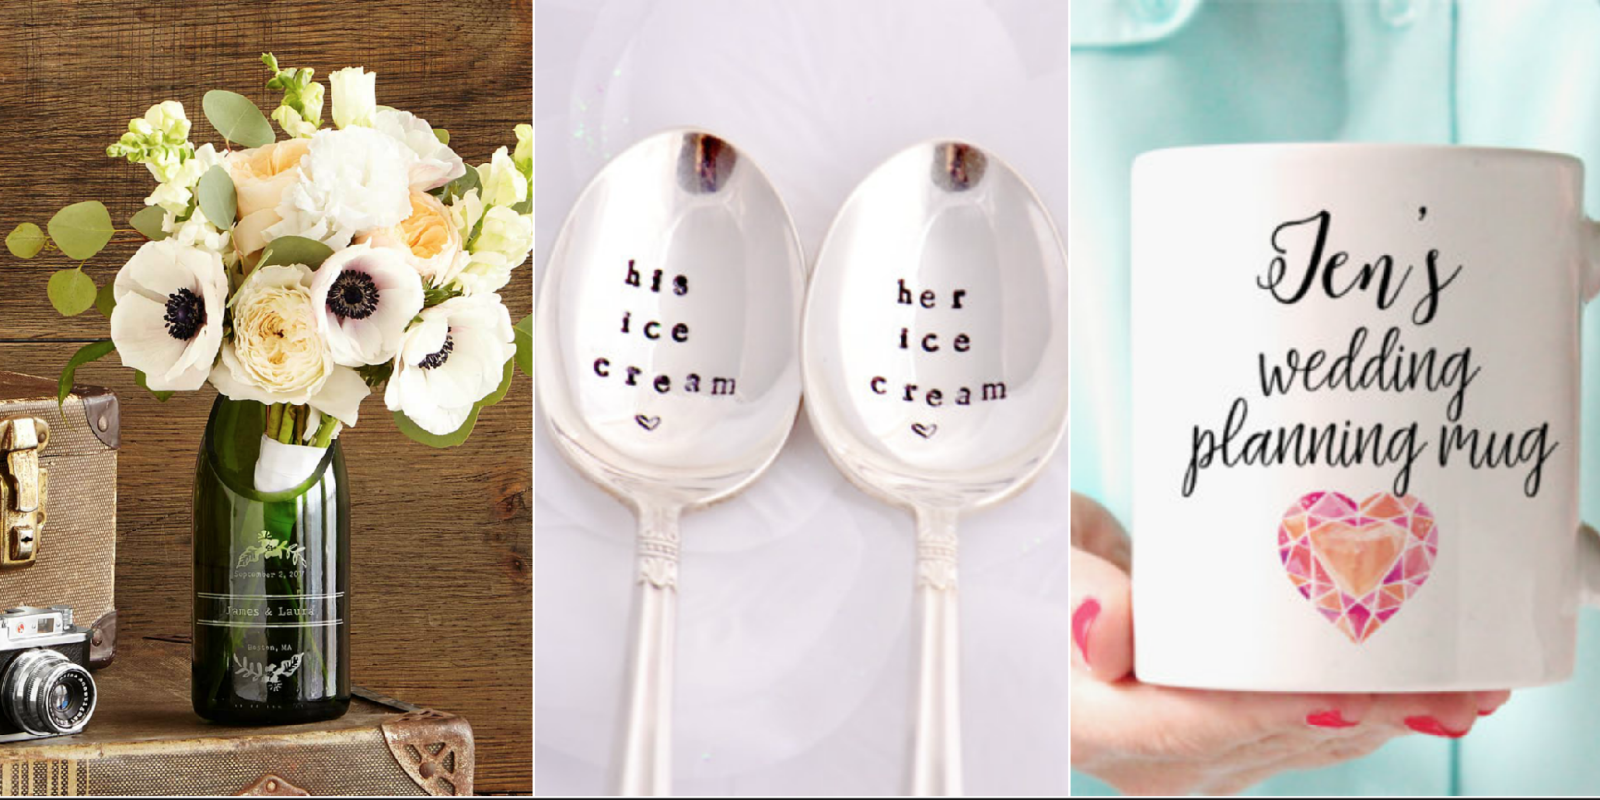 Unique Wedding Gift Ideas: 10 Best Bridal Shower Gift Ideas For The Bride -Unique